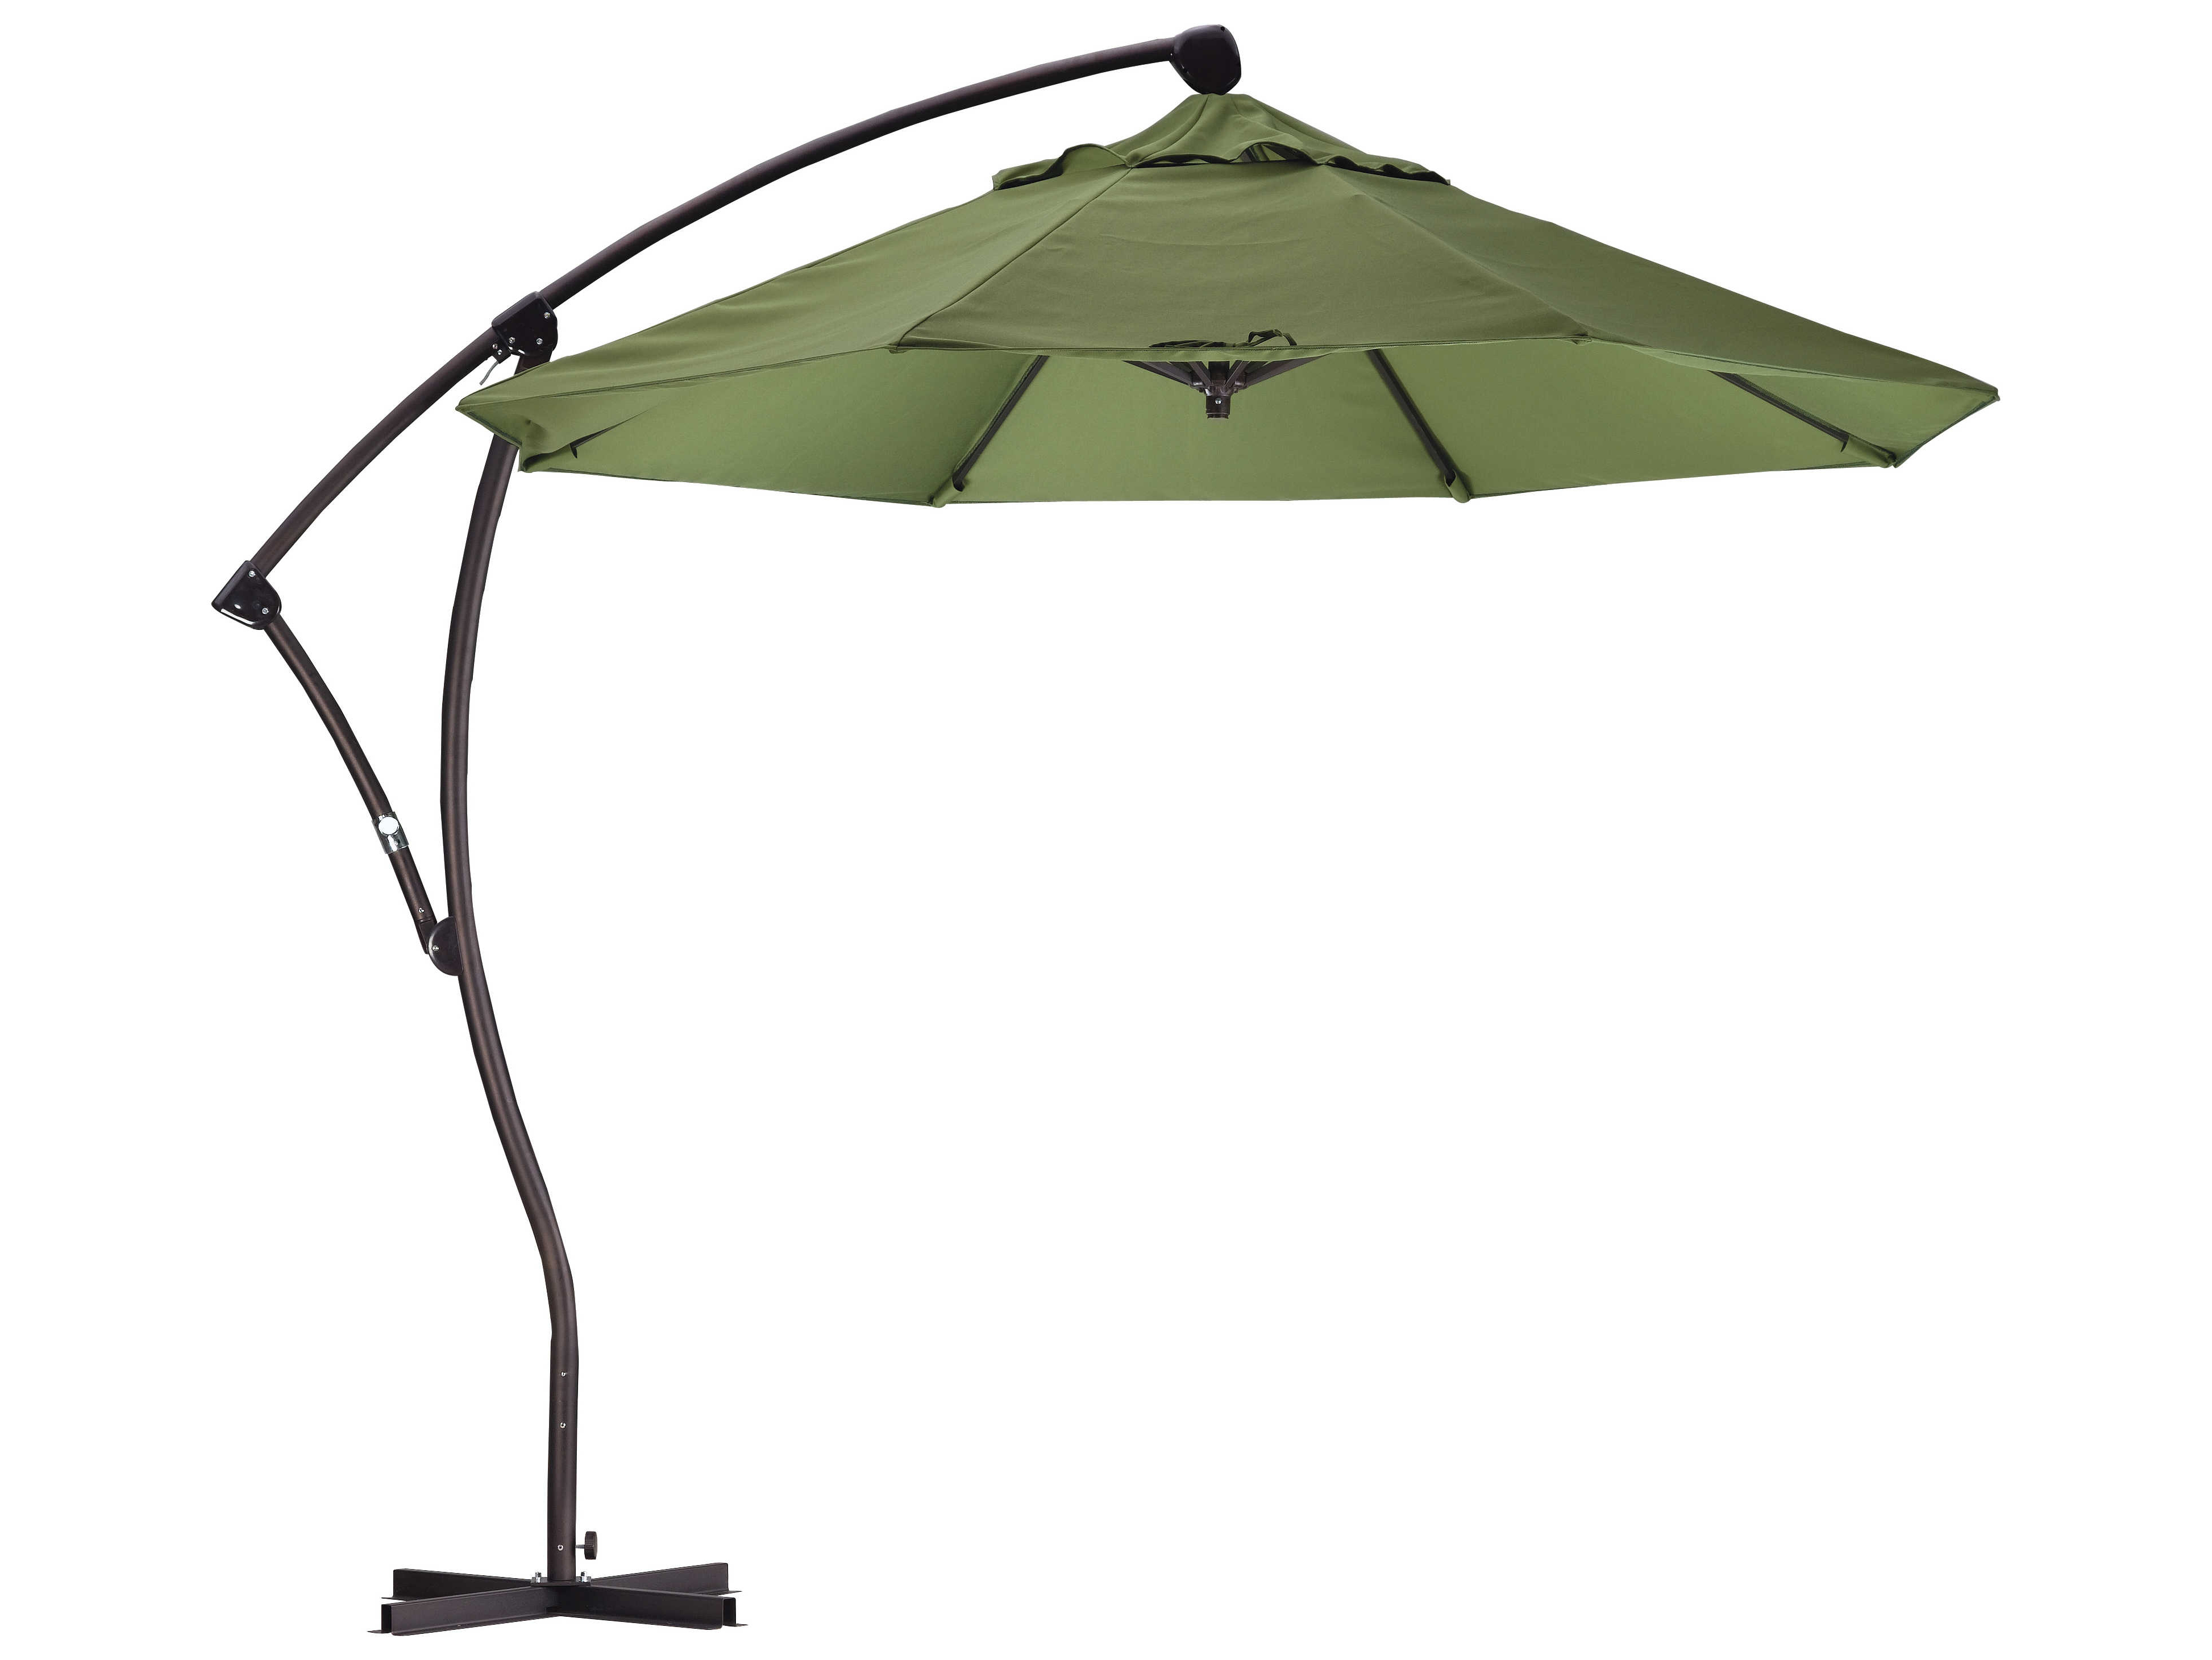 Bayside Series Cantilever Umbrellas Pertaining To Best And Newest California Umbrella Bayside Series 9 Foot Octagon Cantilever Aluminum  Umbrella With Crank Lift System (Gallery 3 of 20)